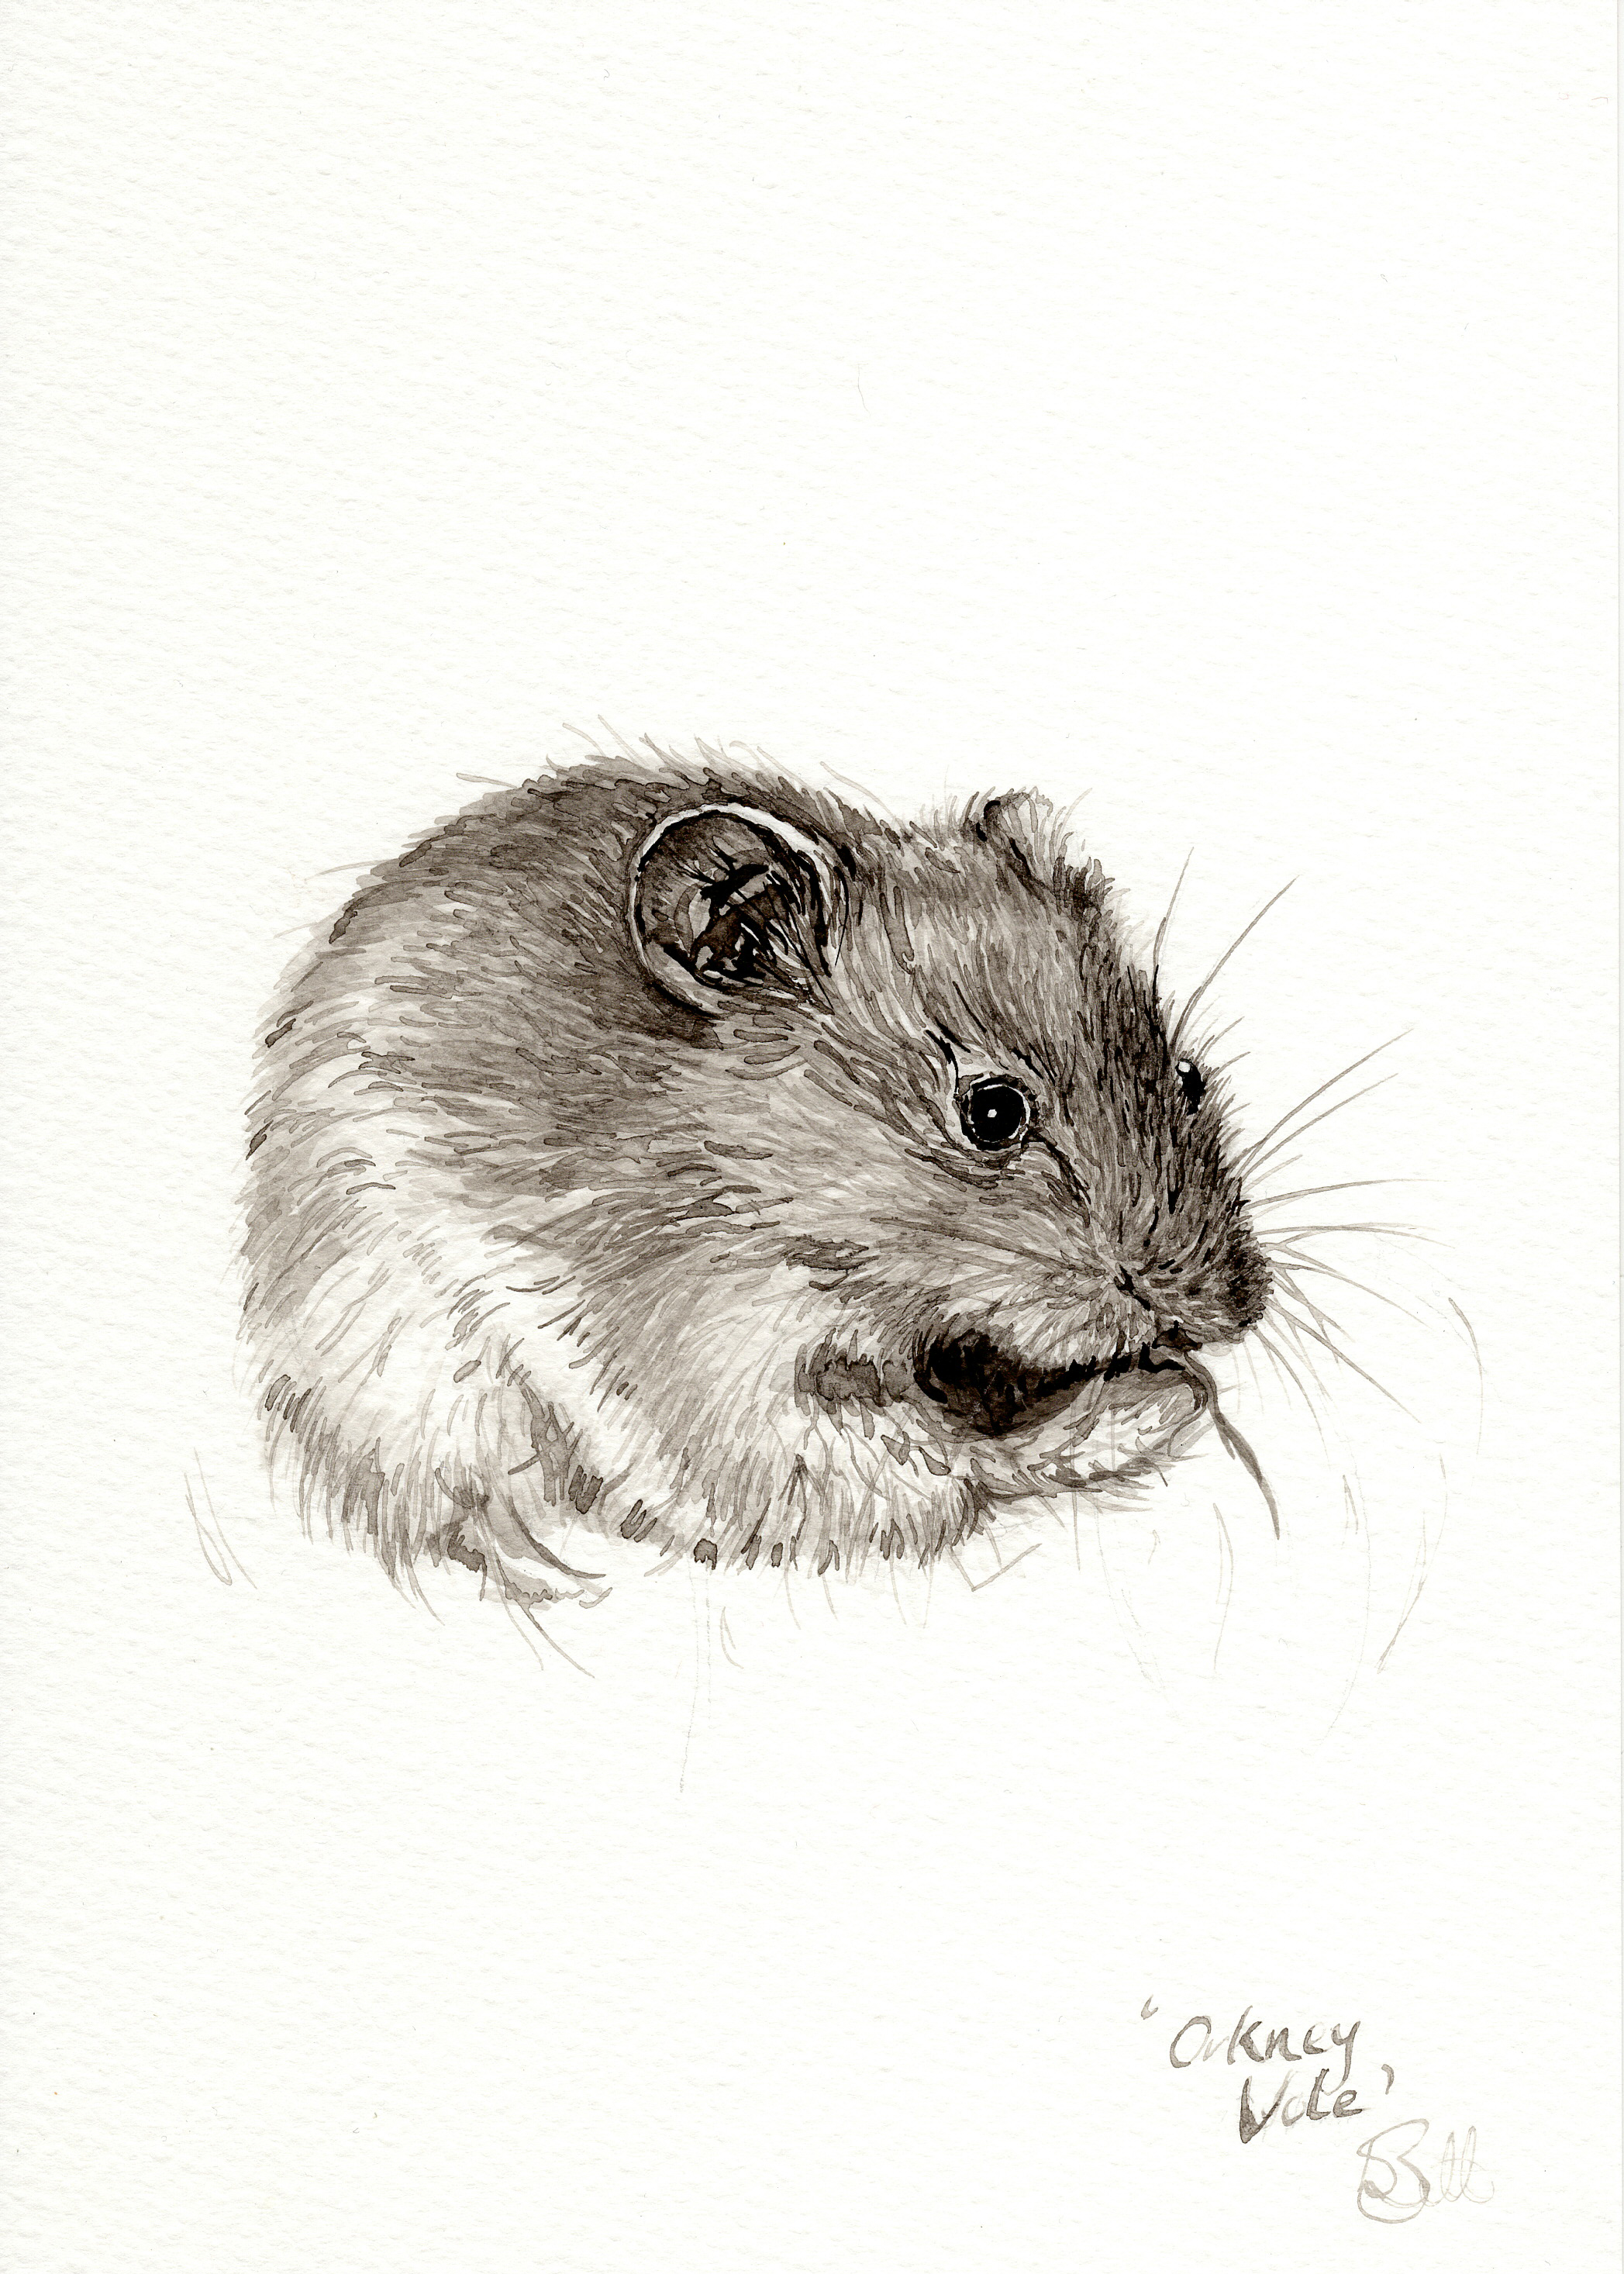 """Orkney Vole"""